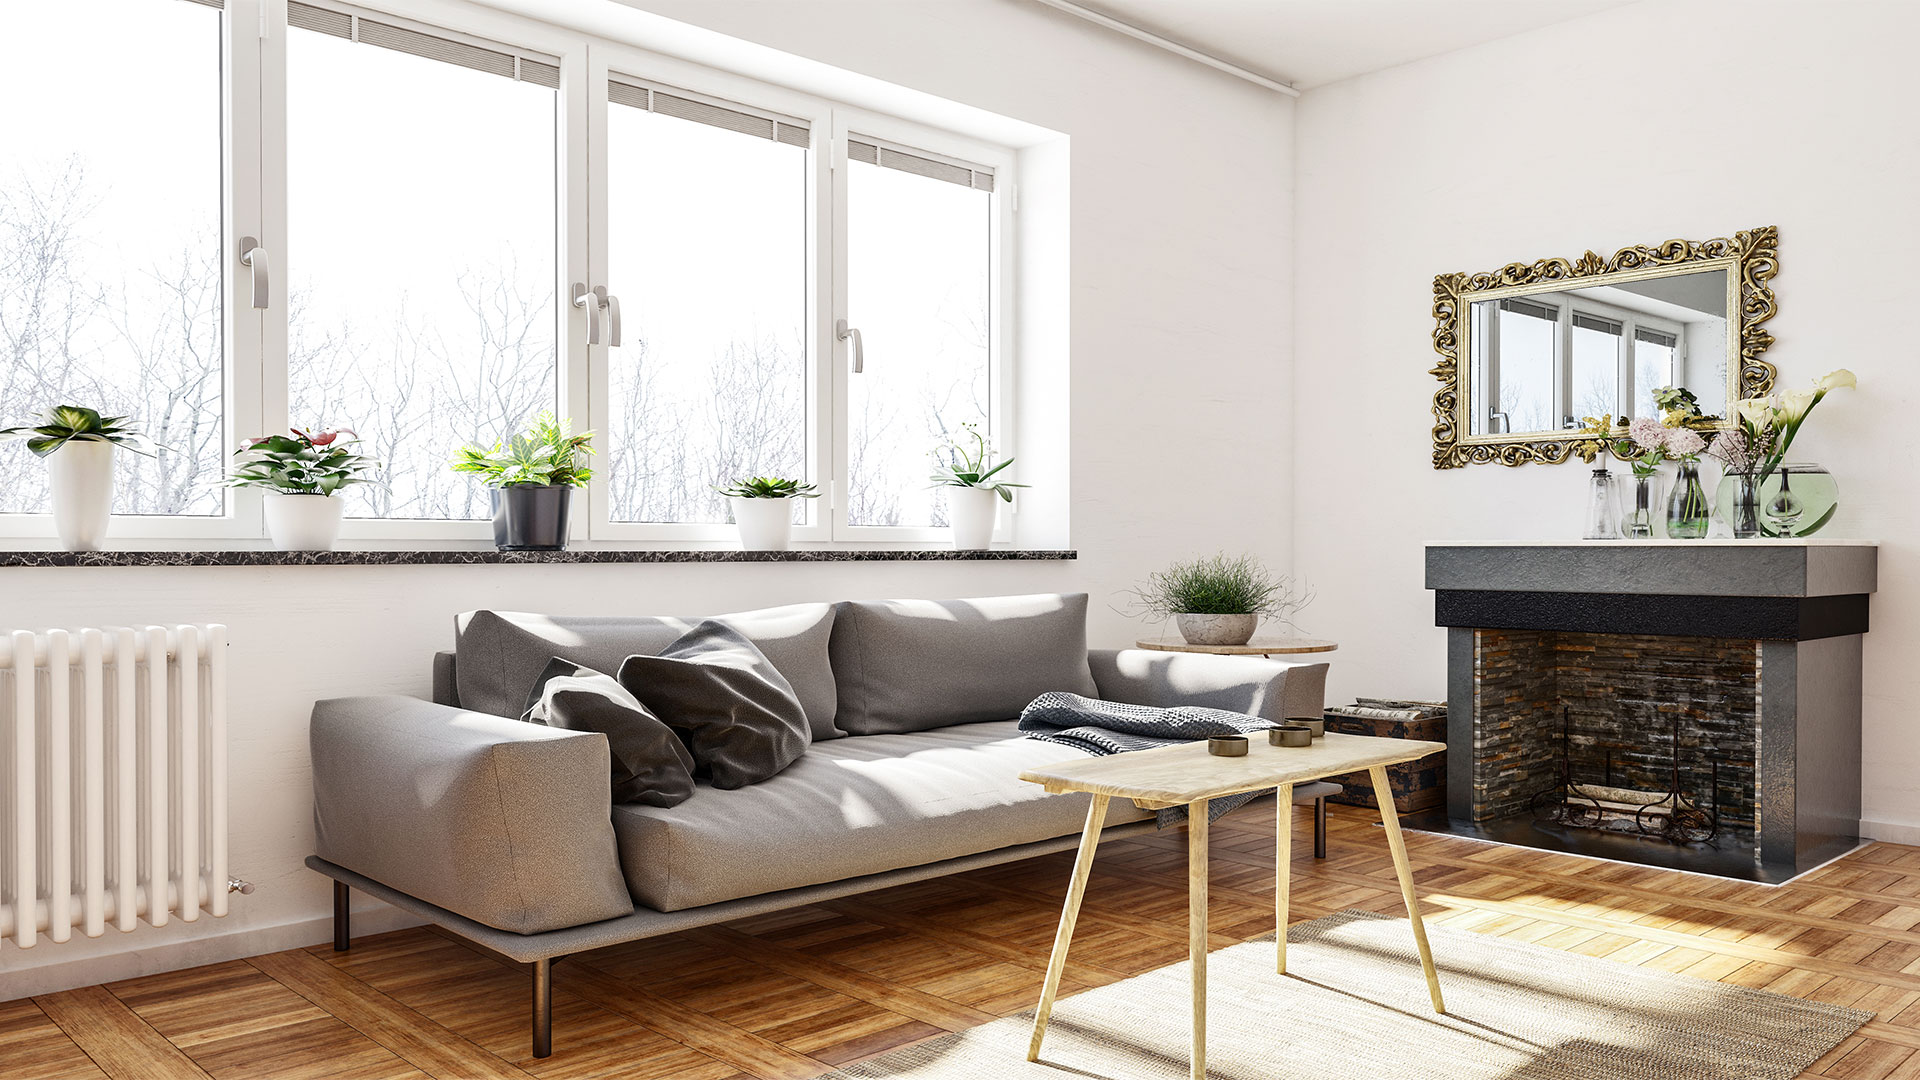 Furnishing your Buy to Let Property